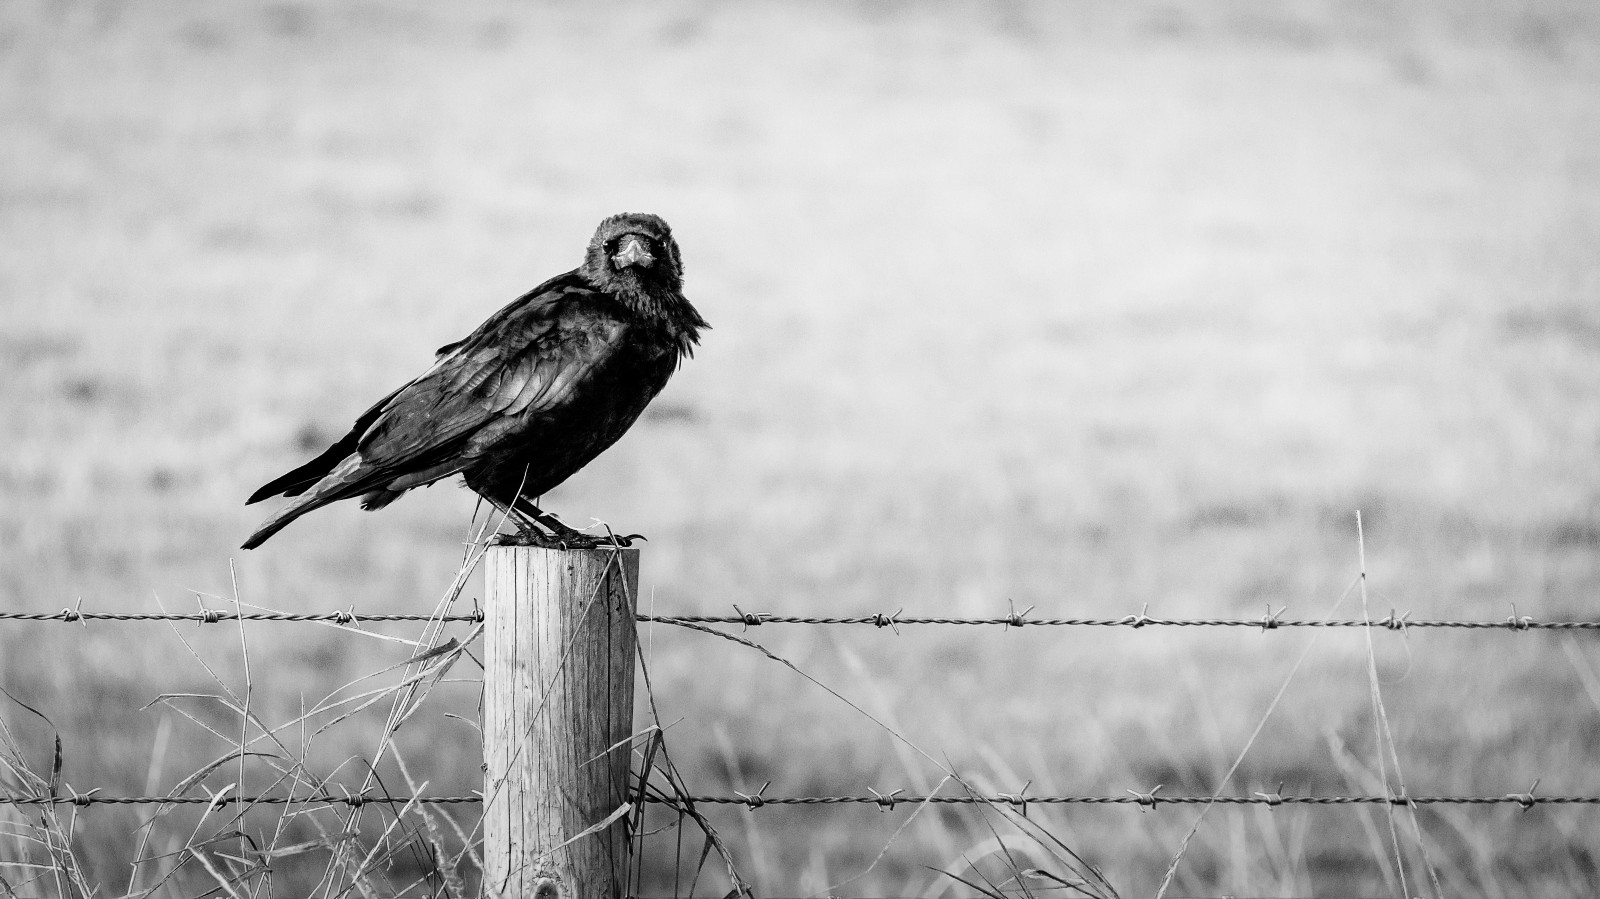 A raven on a fence post. This is the base image for the publication Project: Raven Novel by Jim Latham.